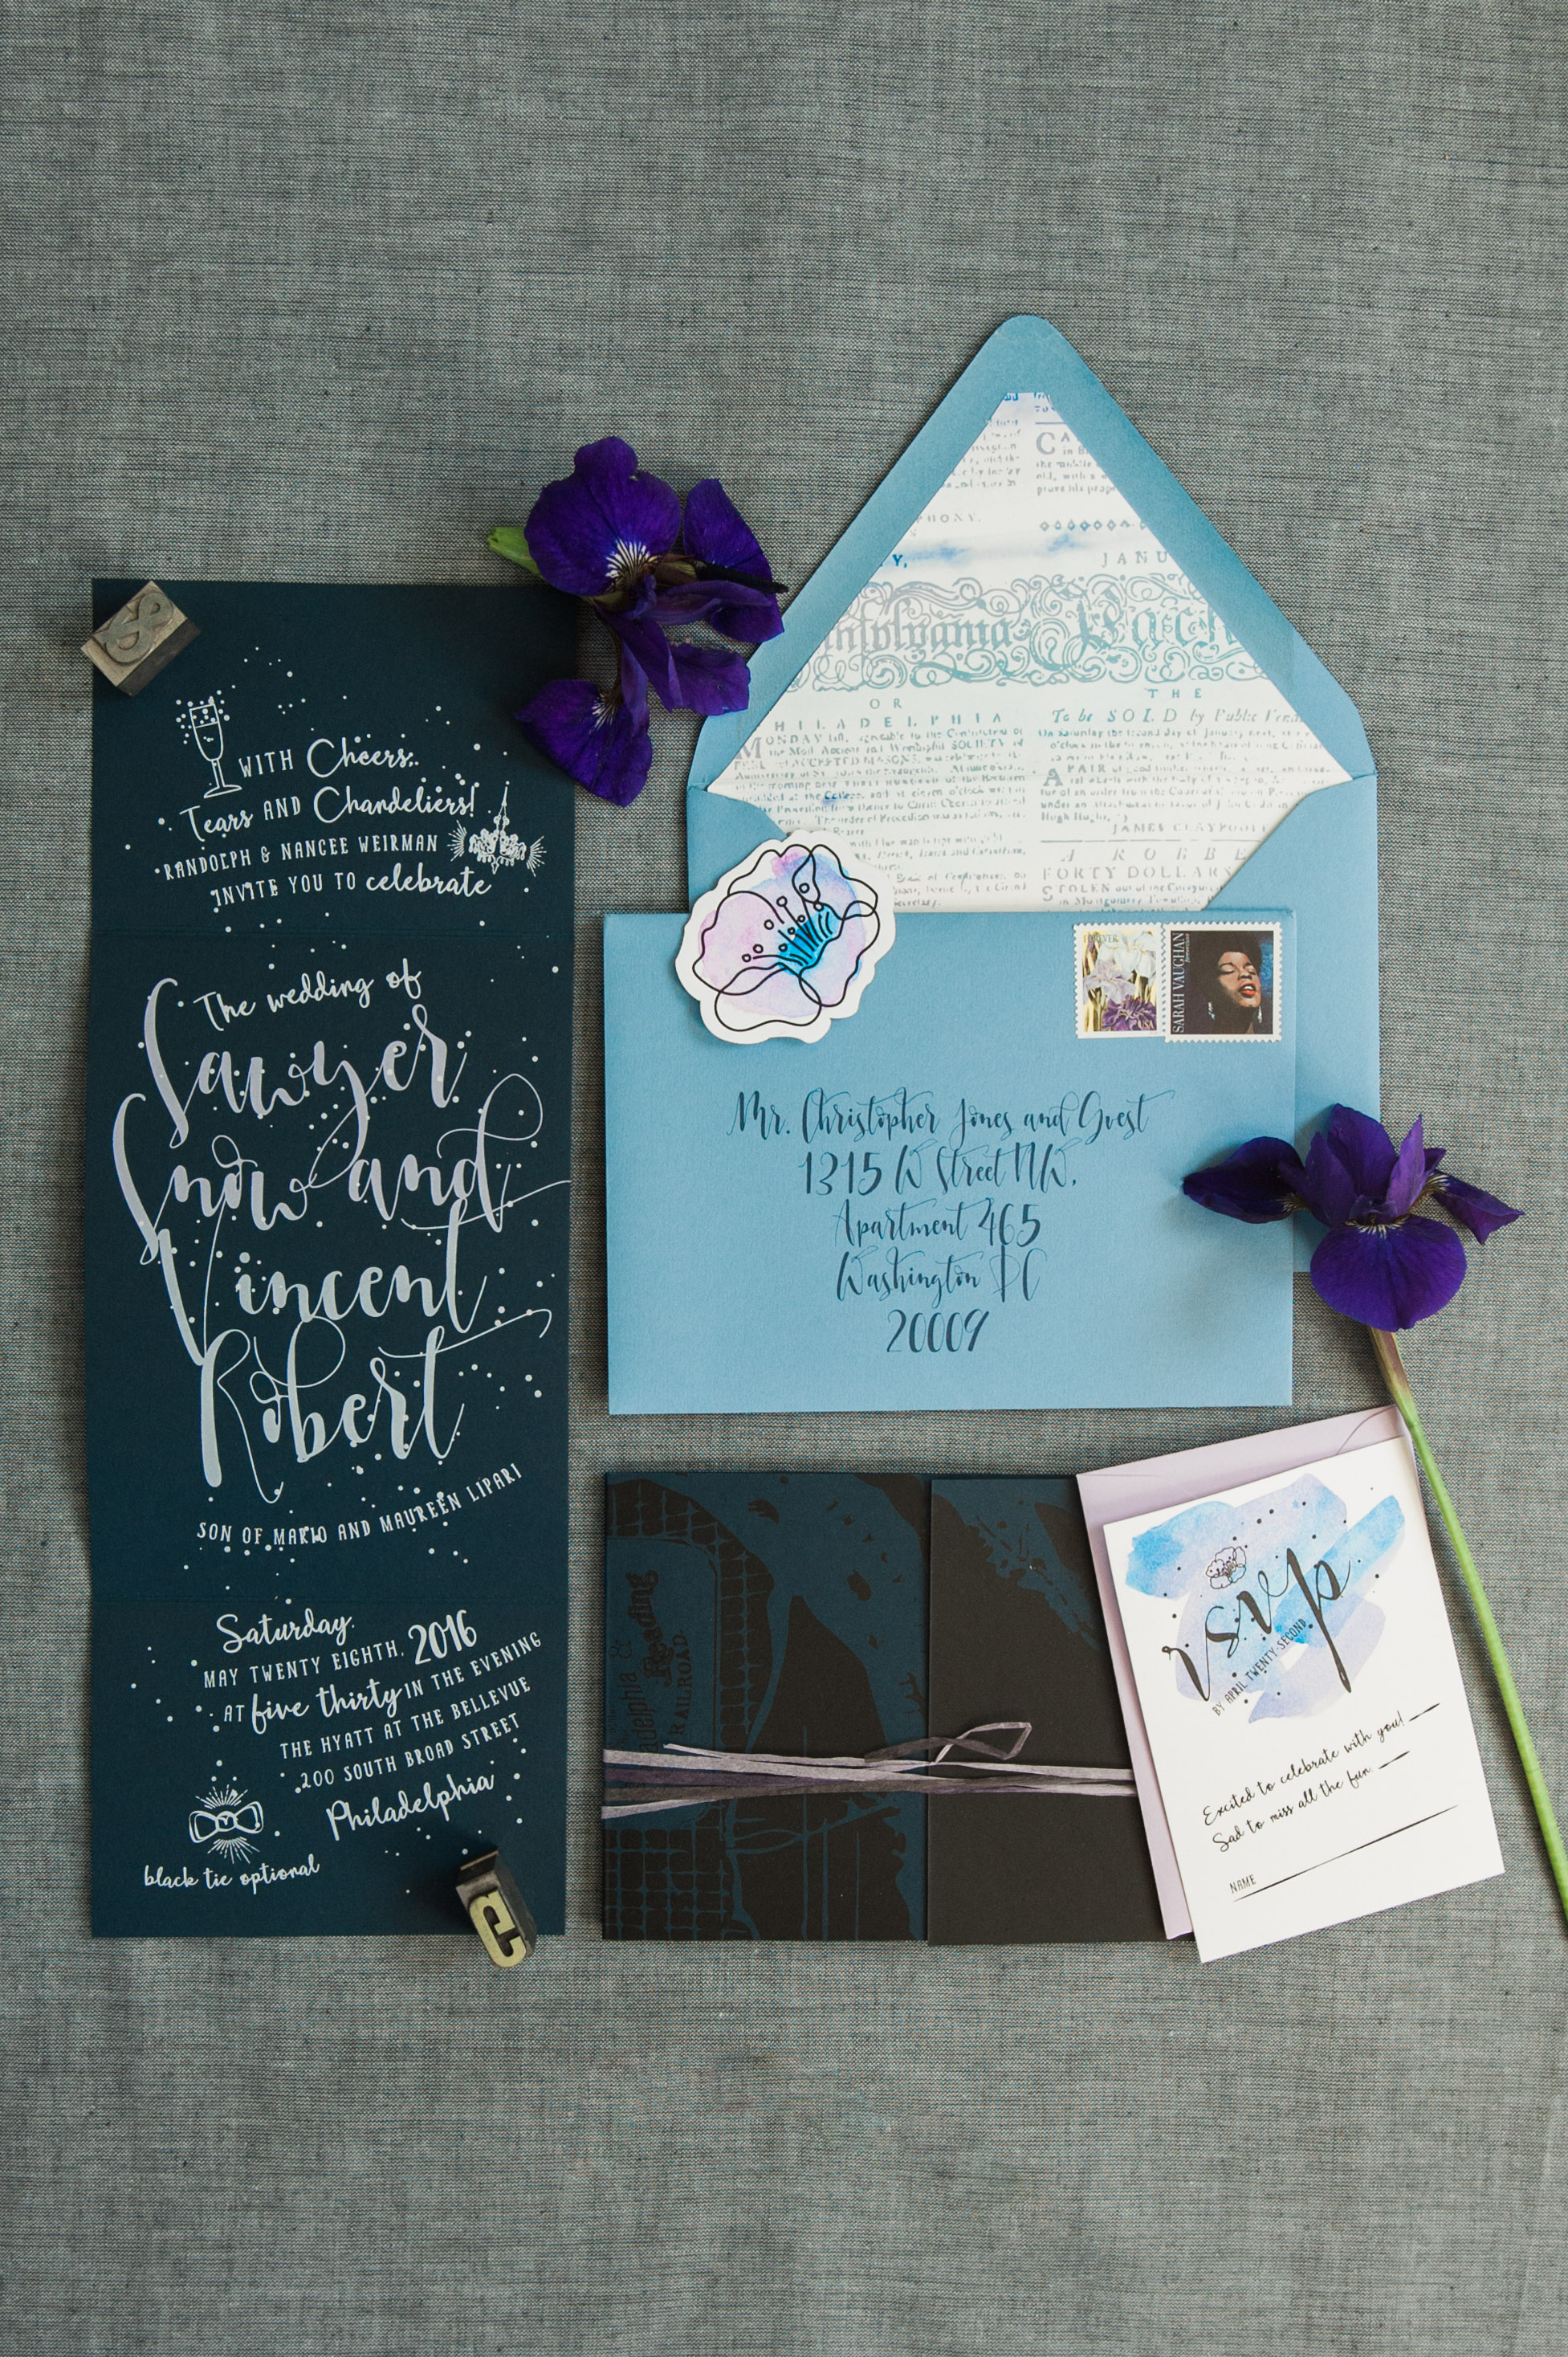 We decided on a invitation that unfolded to maximize impact. We chose a deep blue paper stock and screen printed the inner spread in a gradient from pale blue to lavender.